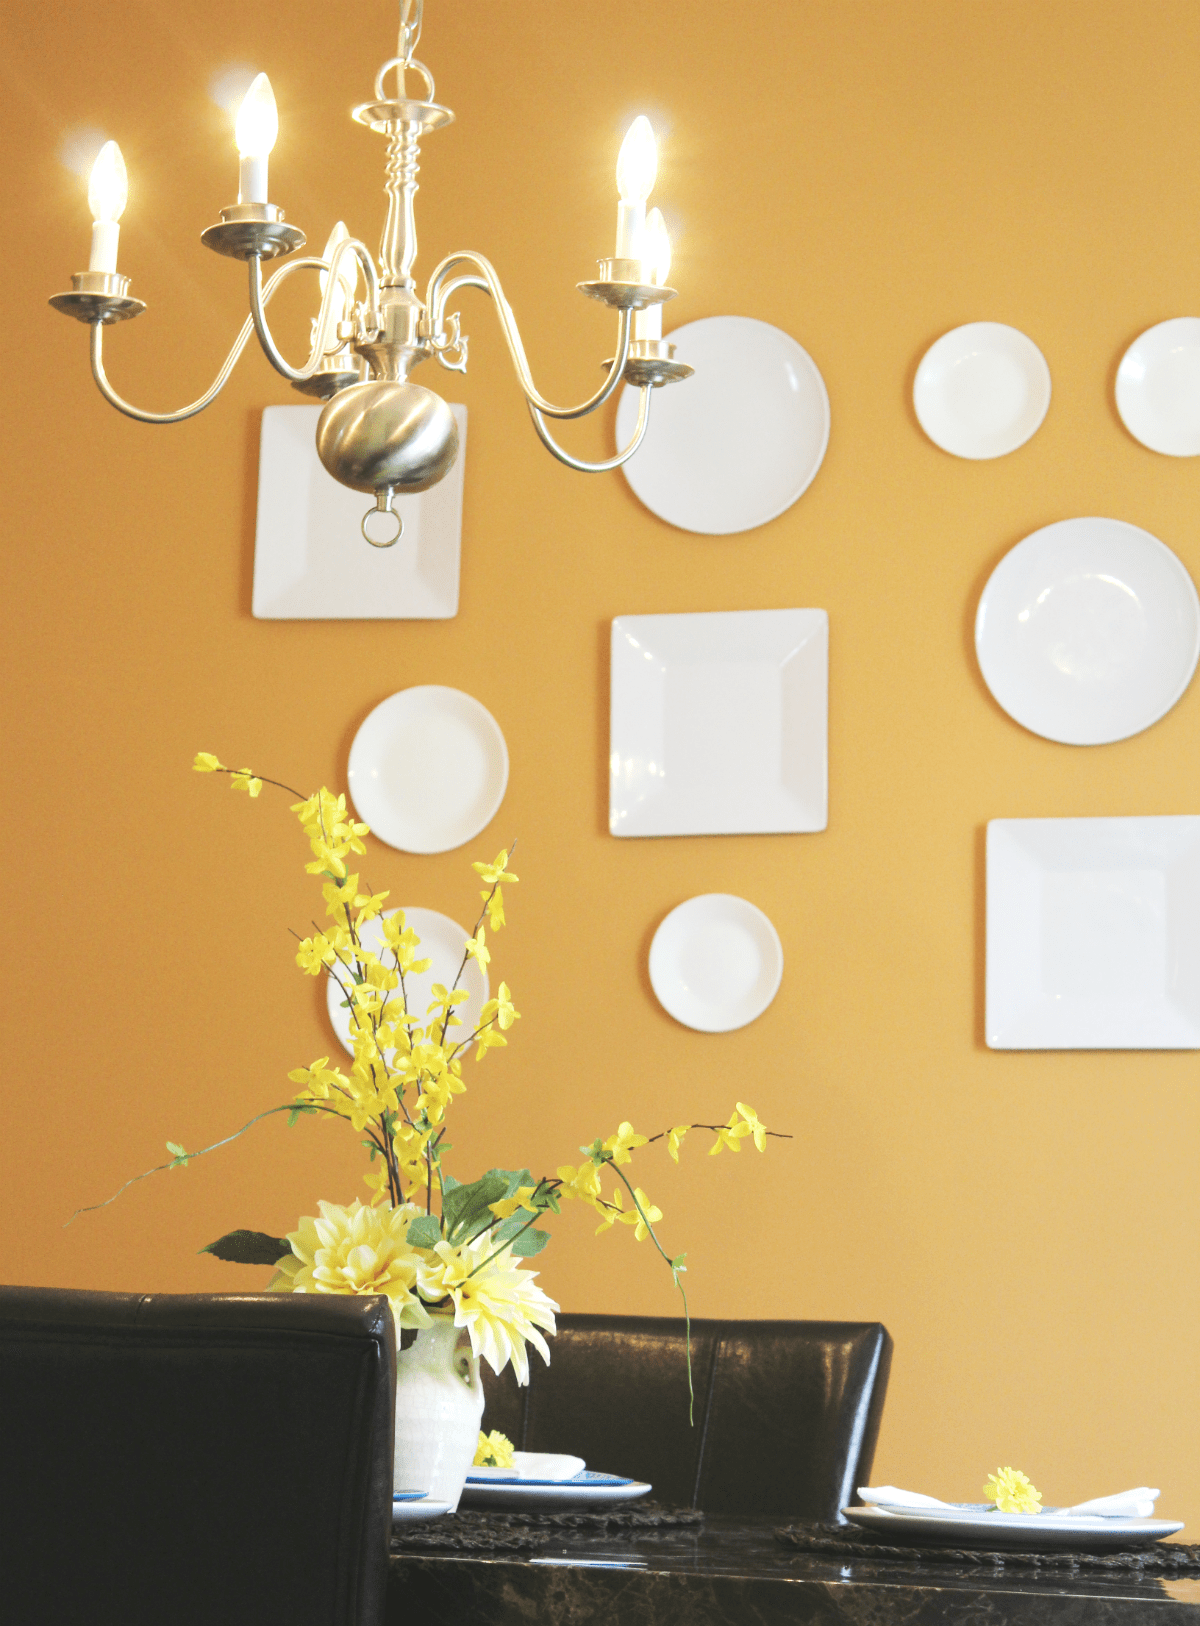 Dinning room reveal - plate wall